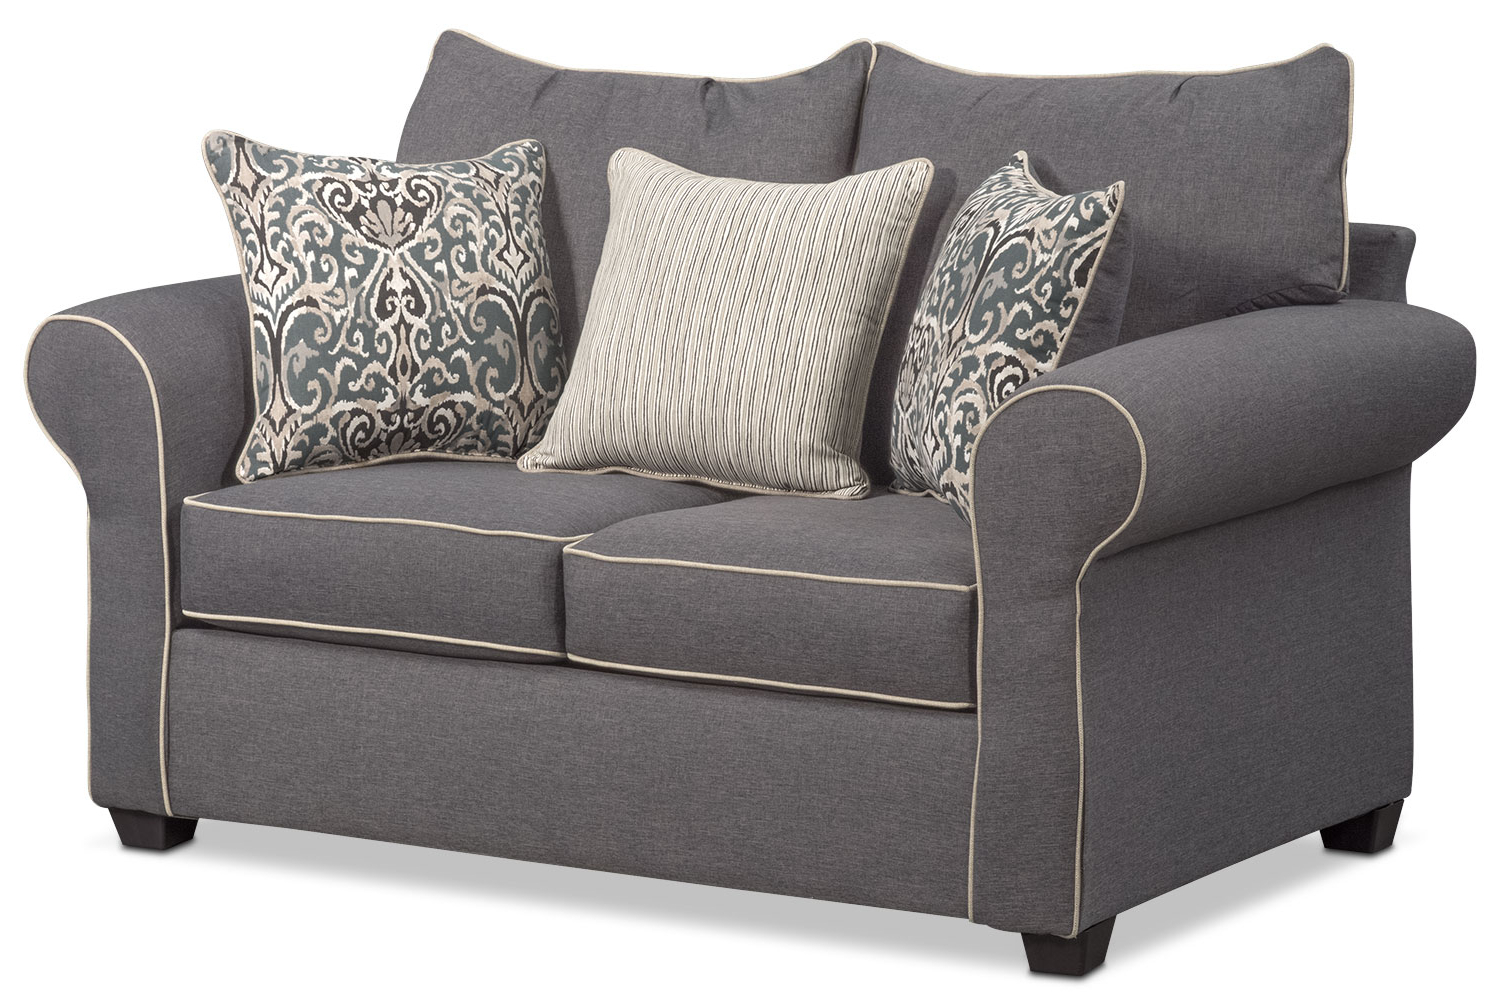 Sofa Loveseat And Chair Set In 2018 Carla Sofa, Loveseat, And Chair Set – Gray (Gallery 8 of 20)